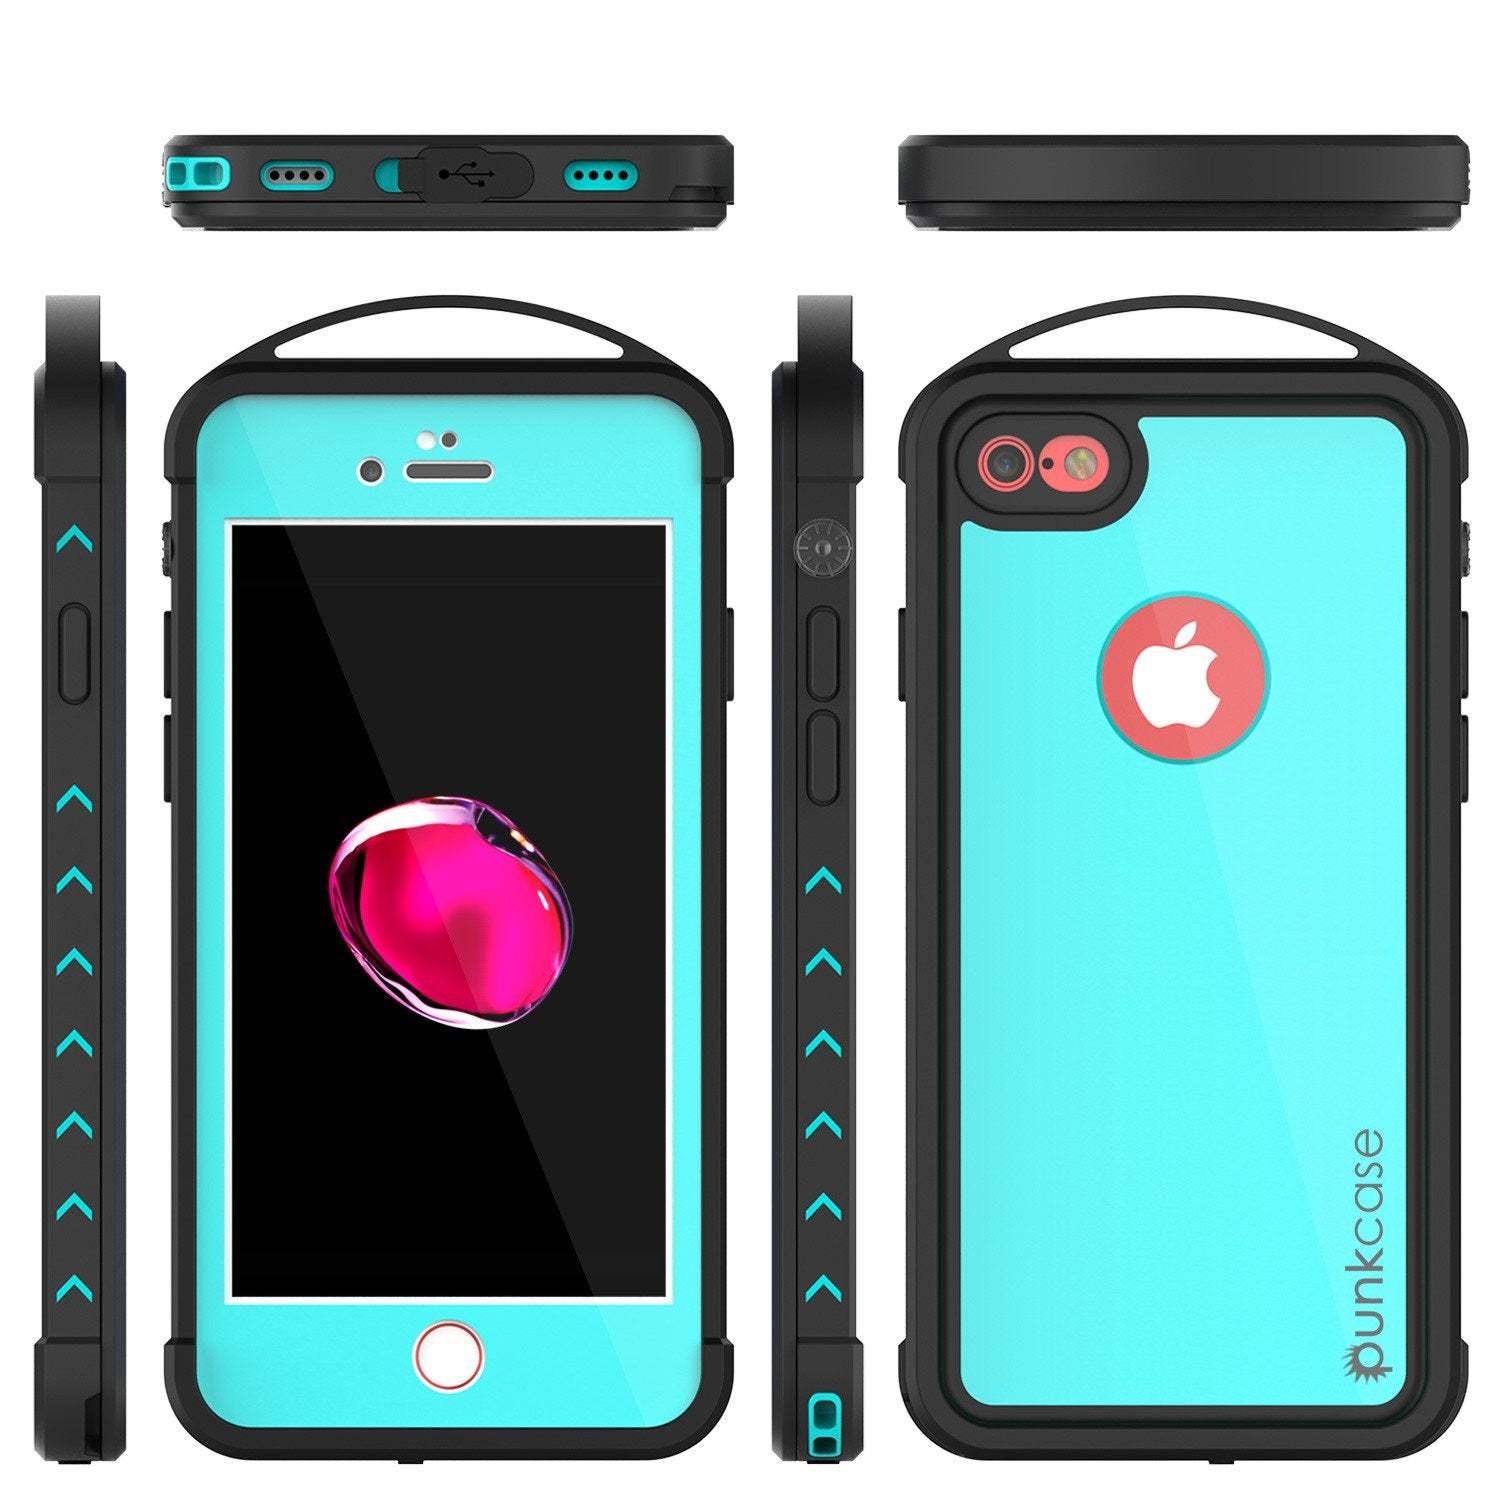 iPhone 7 Waterproof Case, Punkcase ALPINE Series, Teal | Heavy Duty Armor Cover